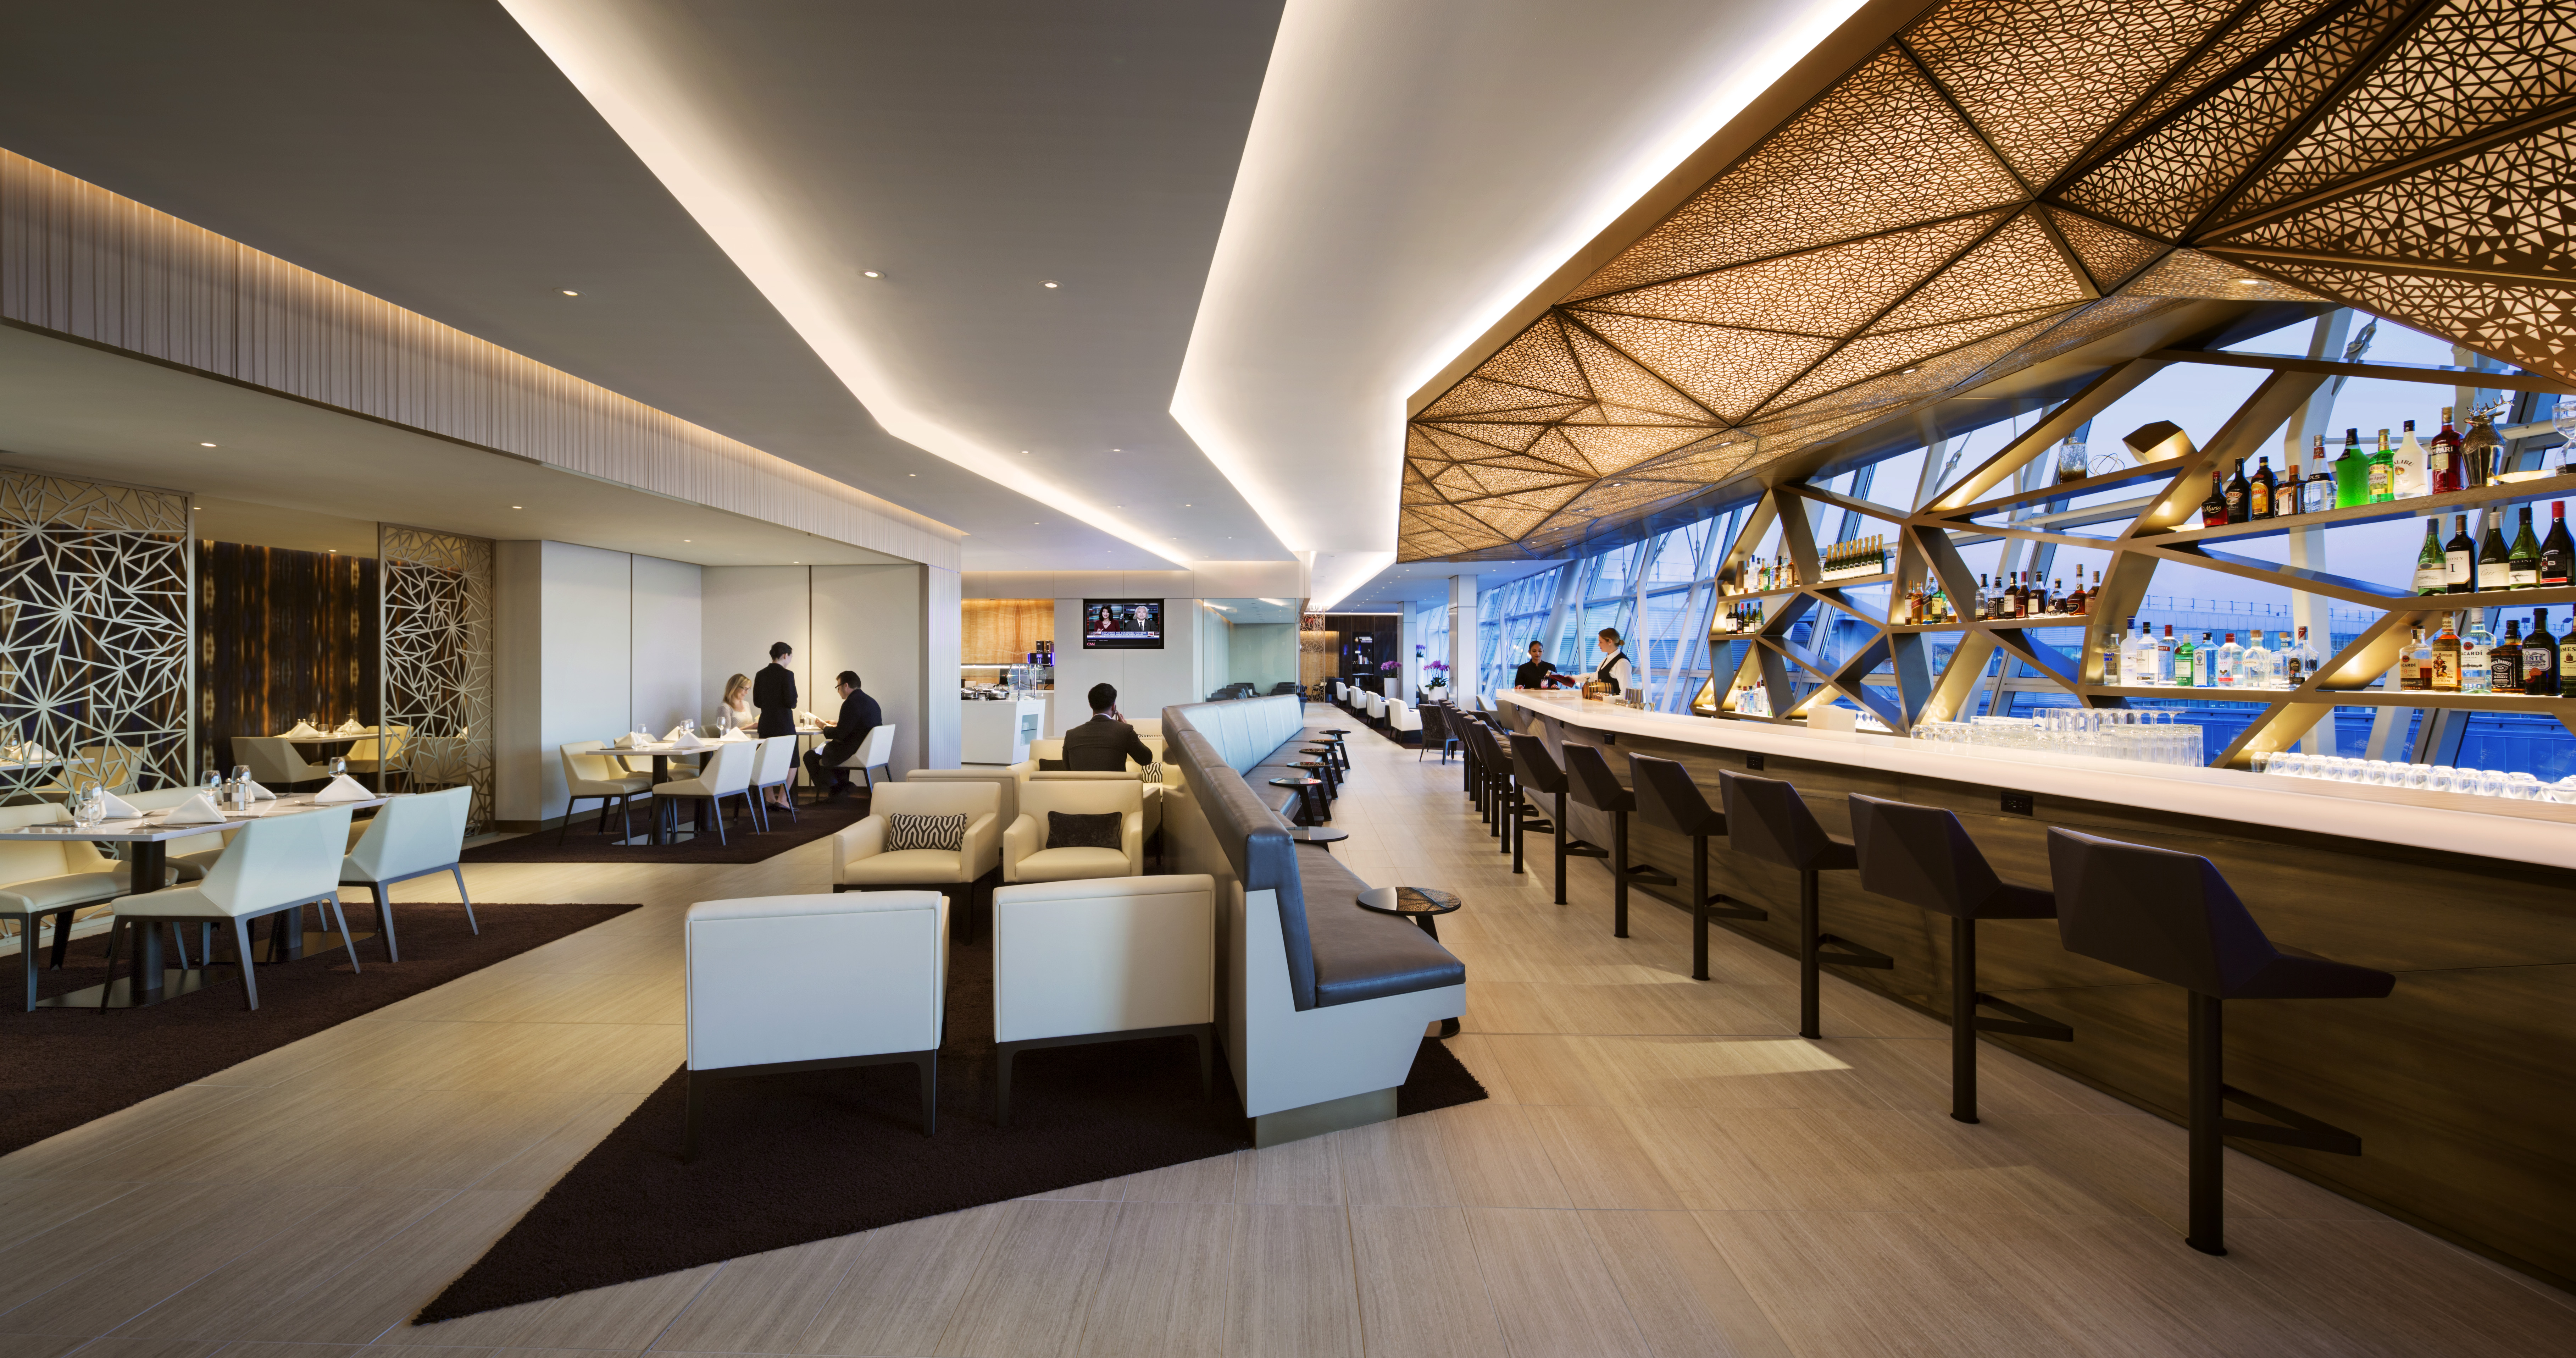 Etihad Airways Brings Comfort To Their First Class Lounge & Spa